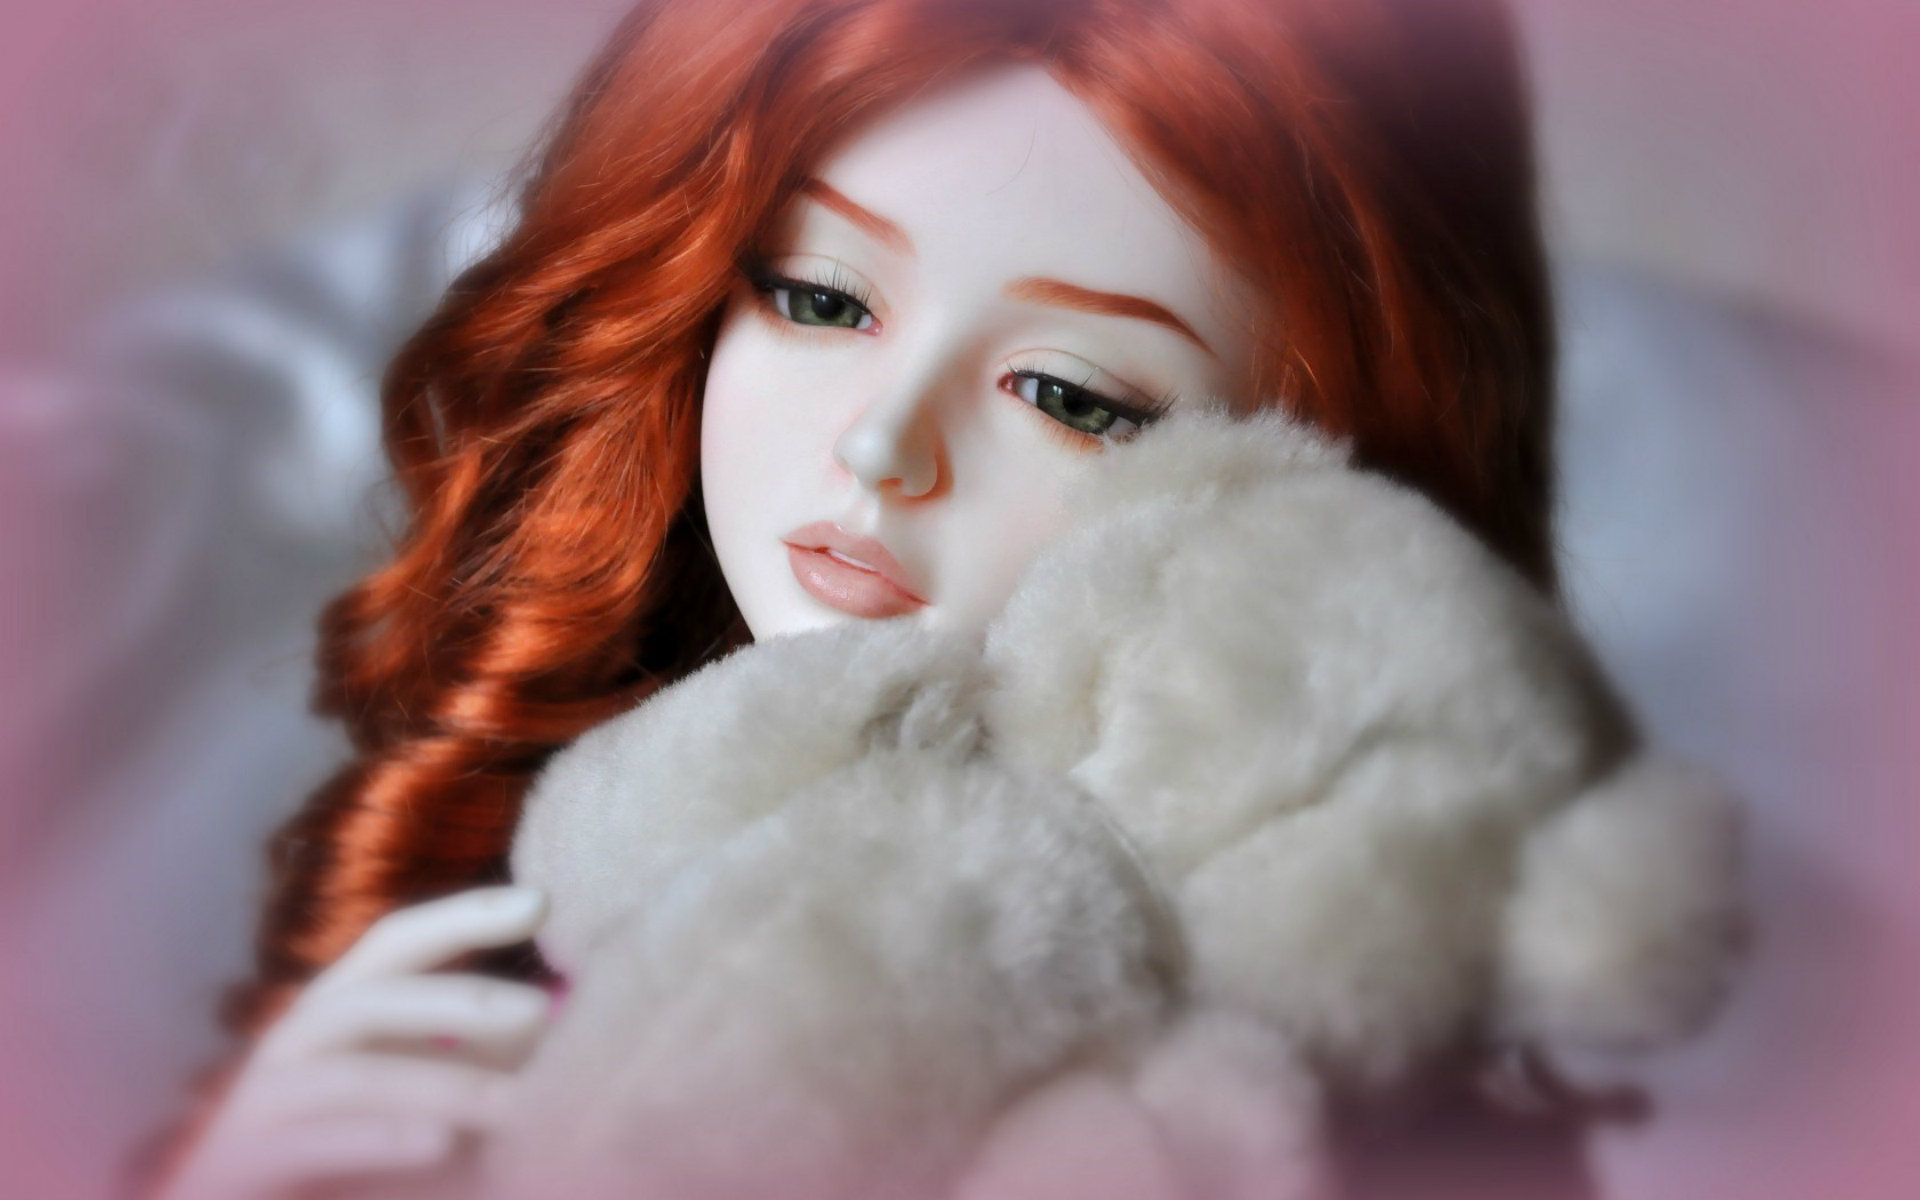 doll pic wallpapers 25 wallpapers � adorable wallpapers